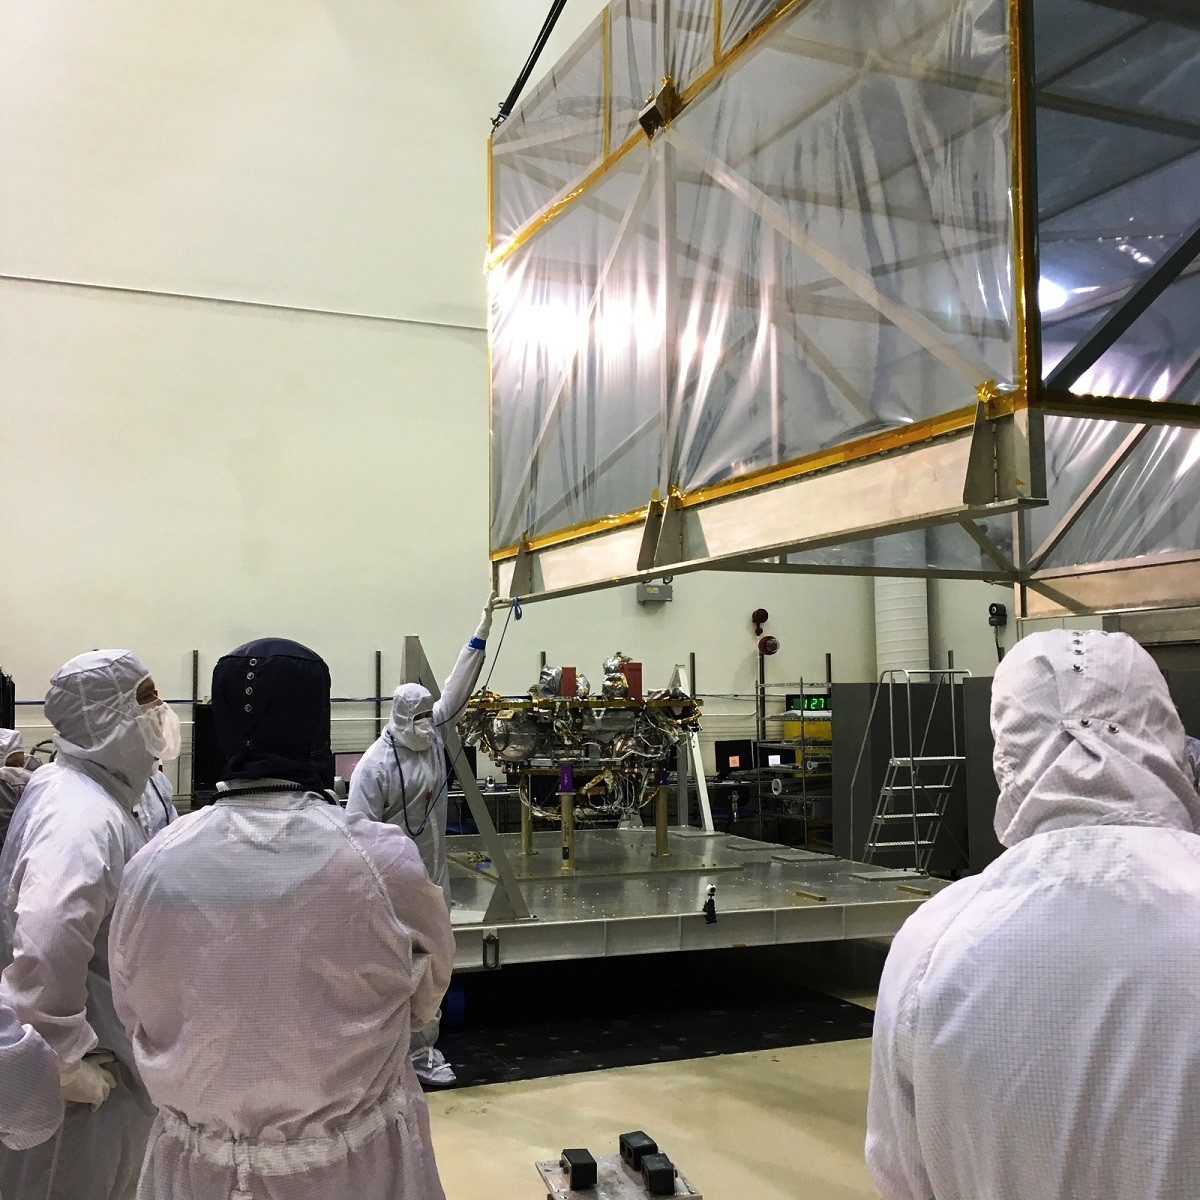 Two JPL engineers are standing next to three different generation vehicles from Mars Rovers